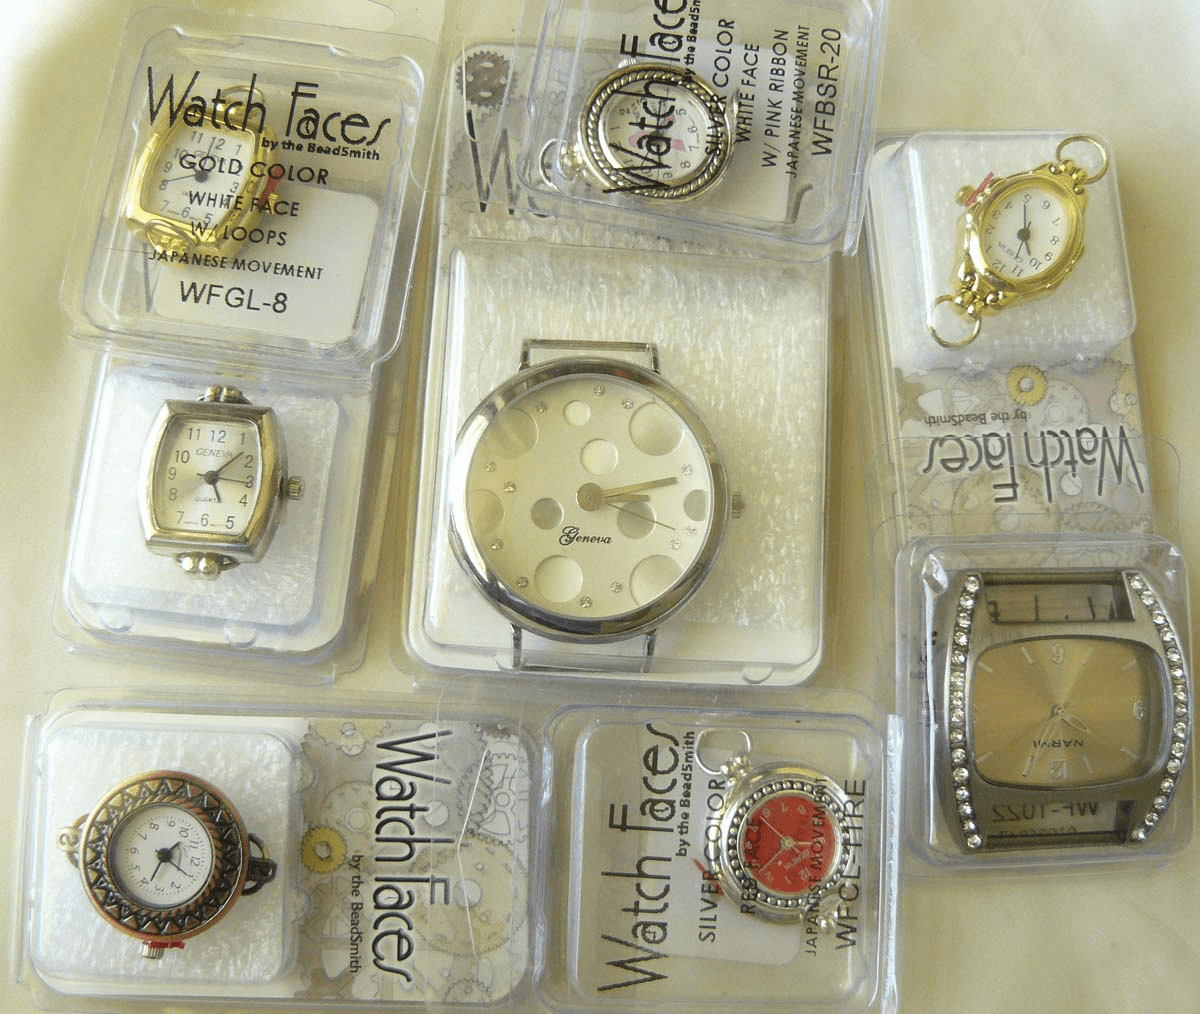 Watch Faces ready to bead around with Japanese movements and kids watches